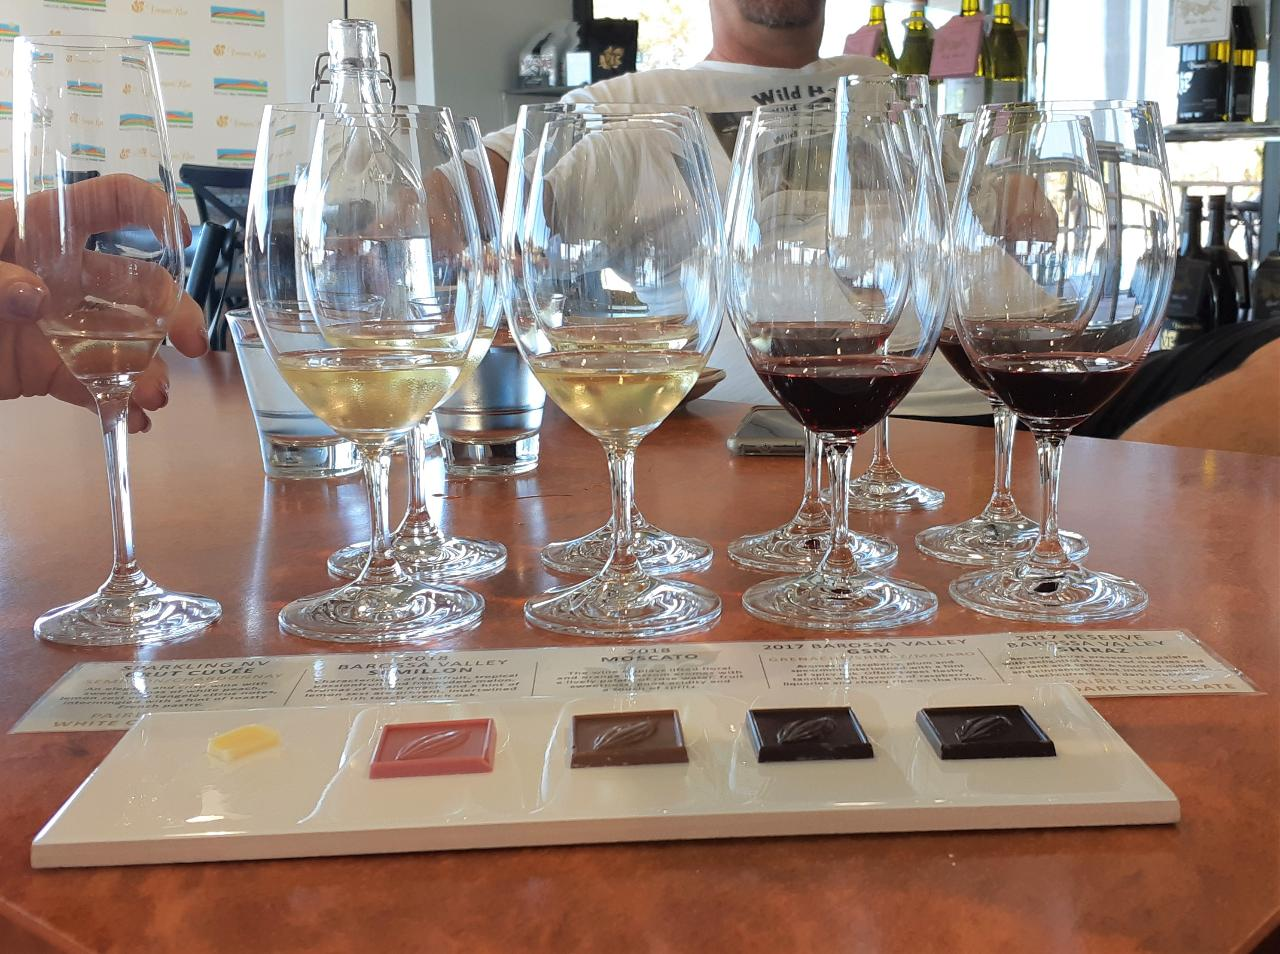 CHOCOLATE & FINE WINES - SHARED DAY TOUR